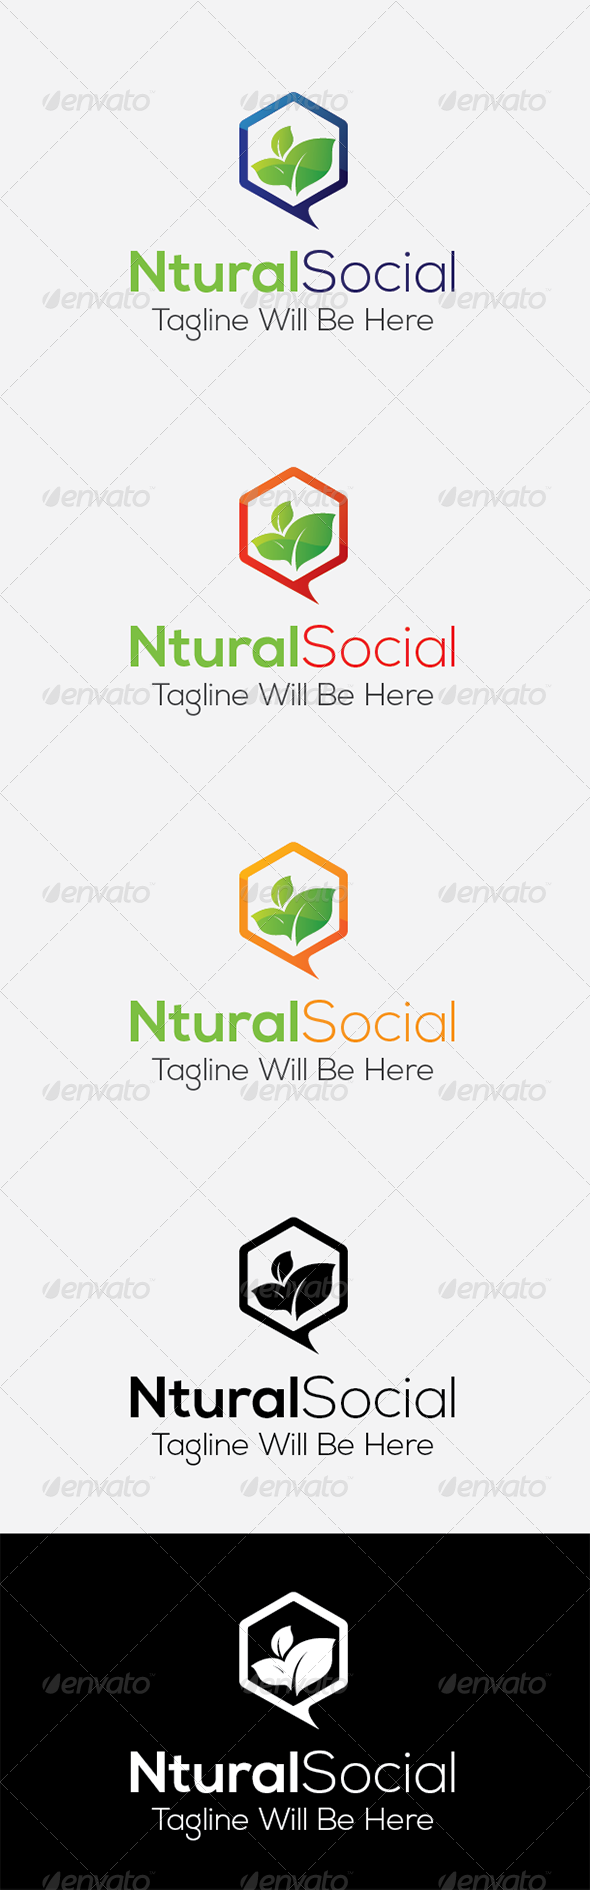 GraphicRiver Natural Social 8170118